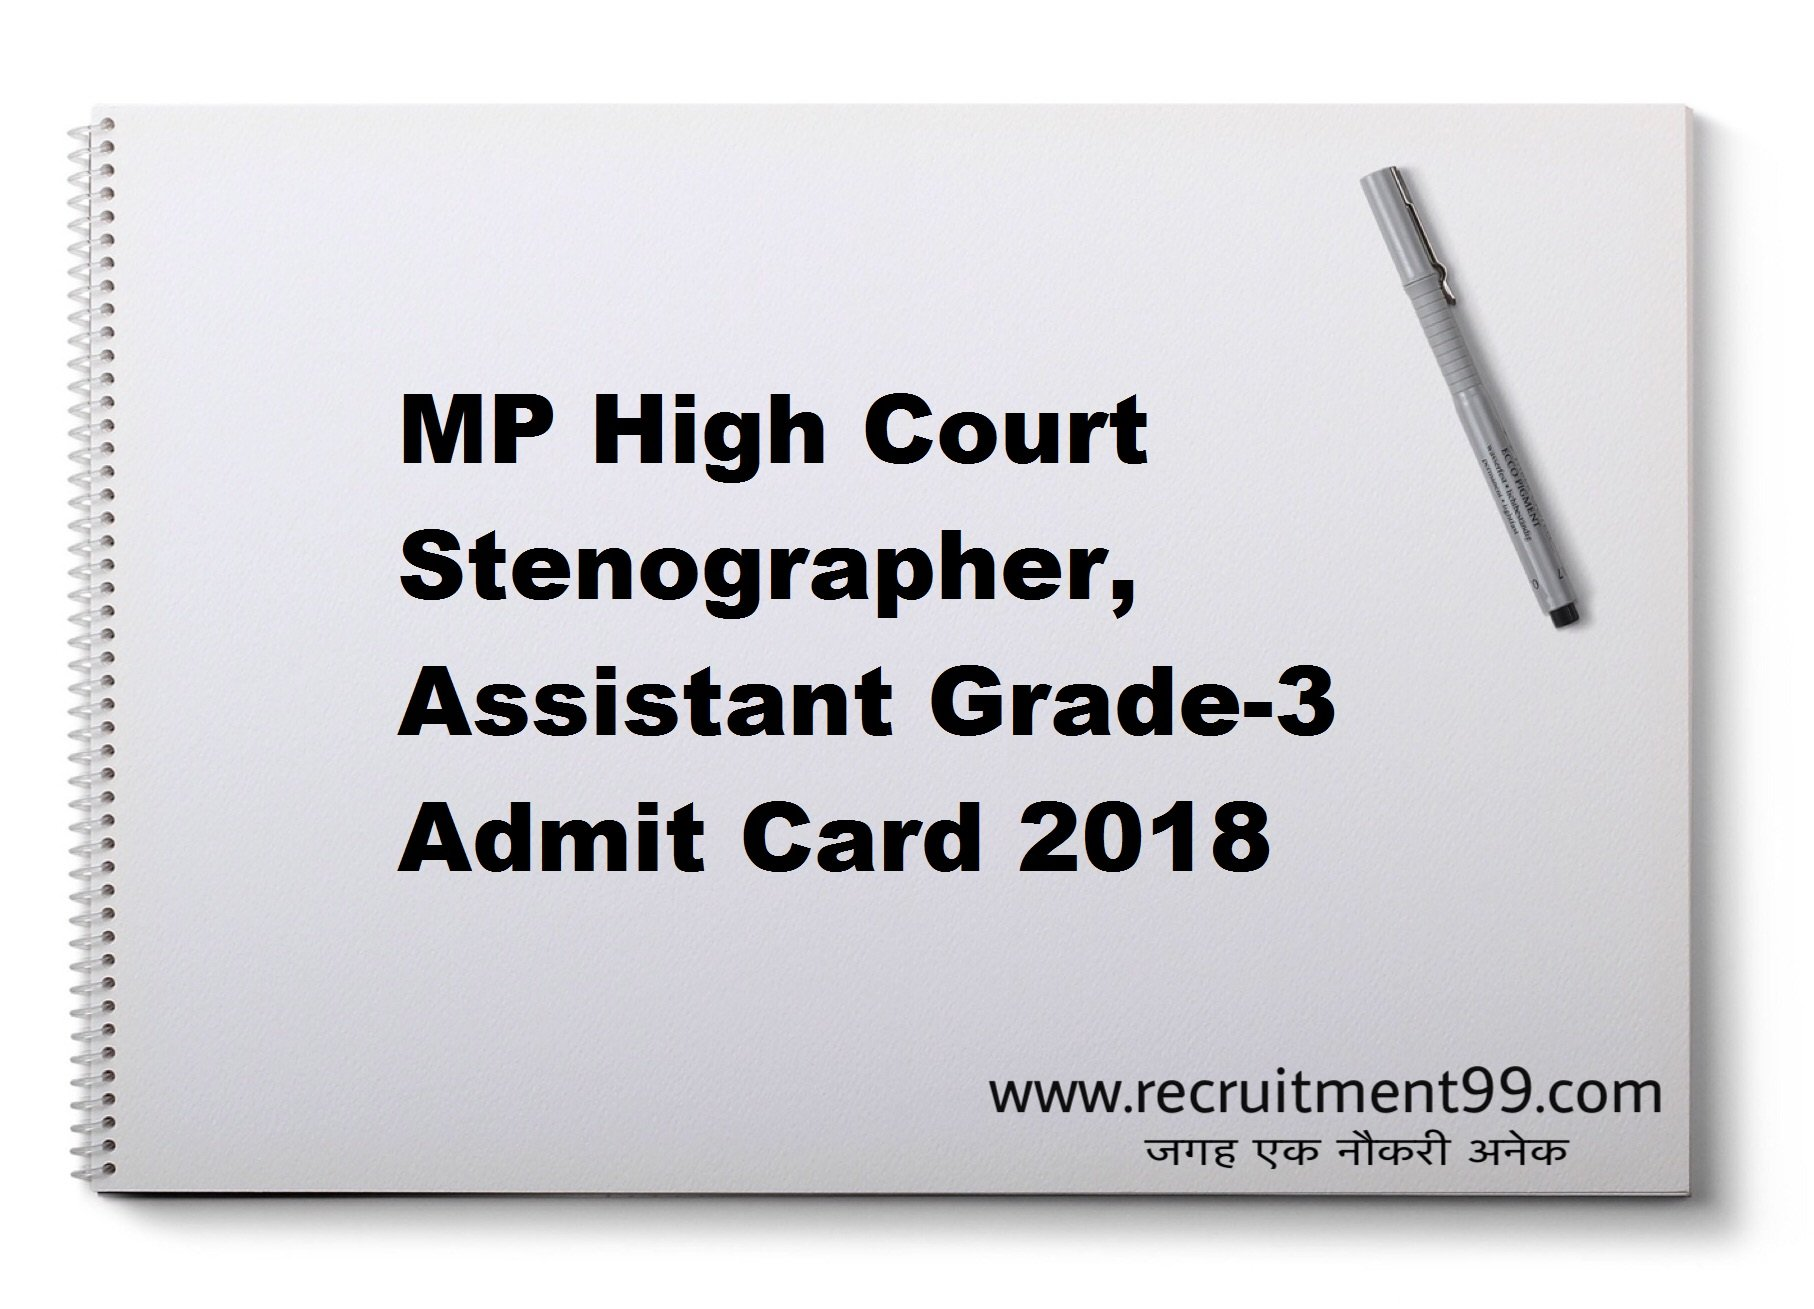 MP High Court Stenographer, Assistant Grade-3 Recruitment Admit Card Result 2018